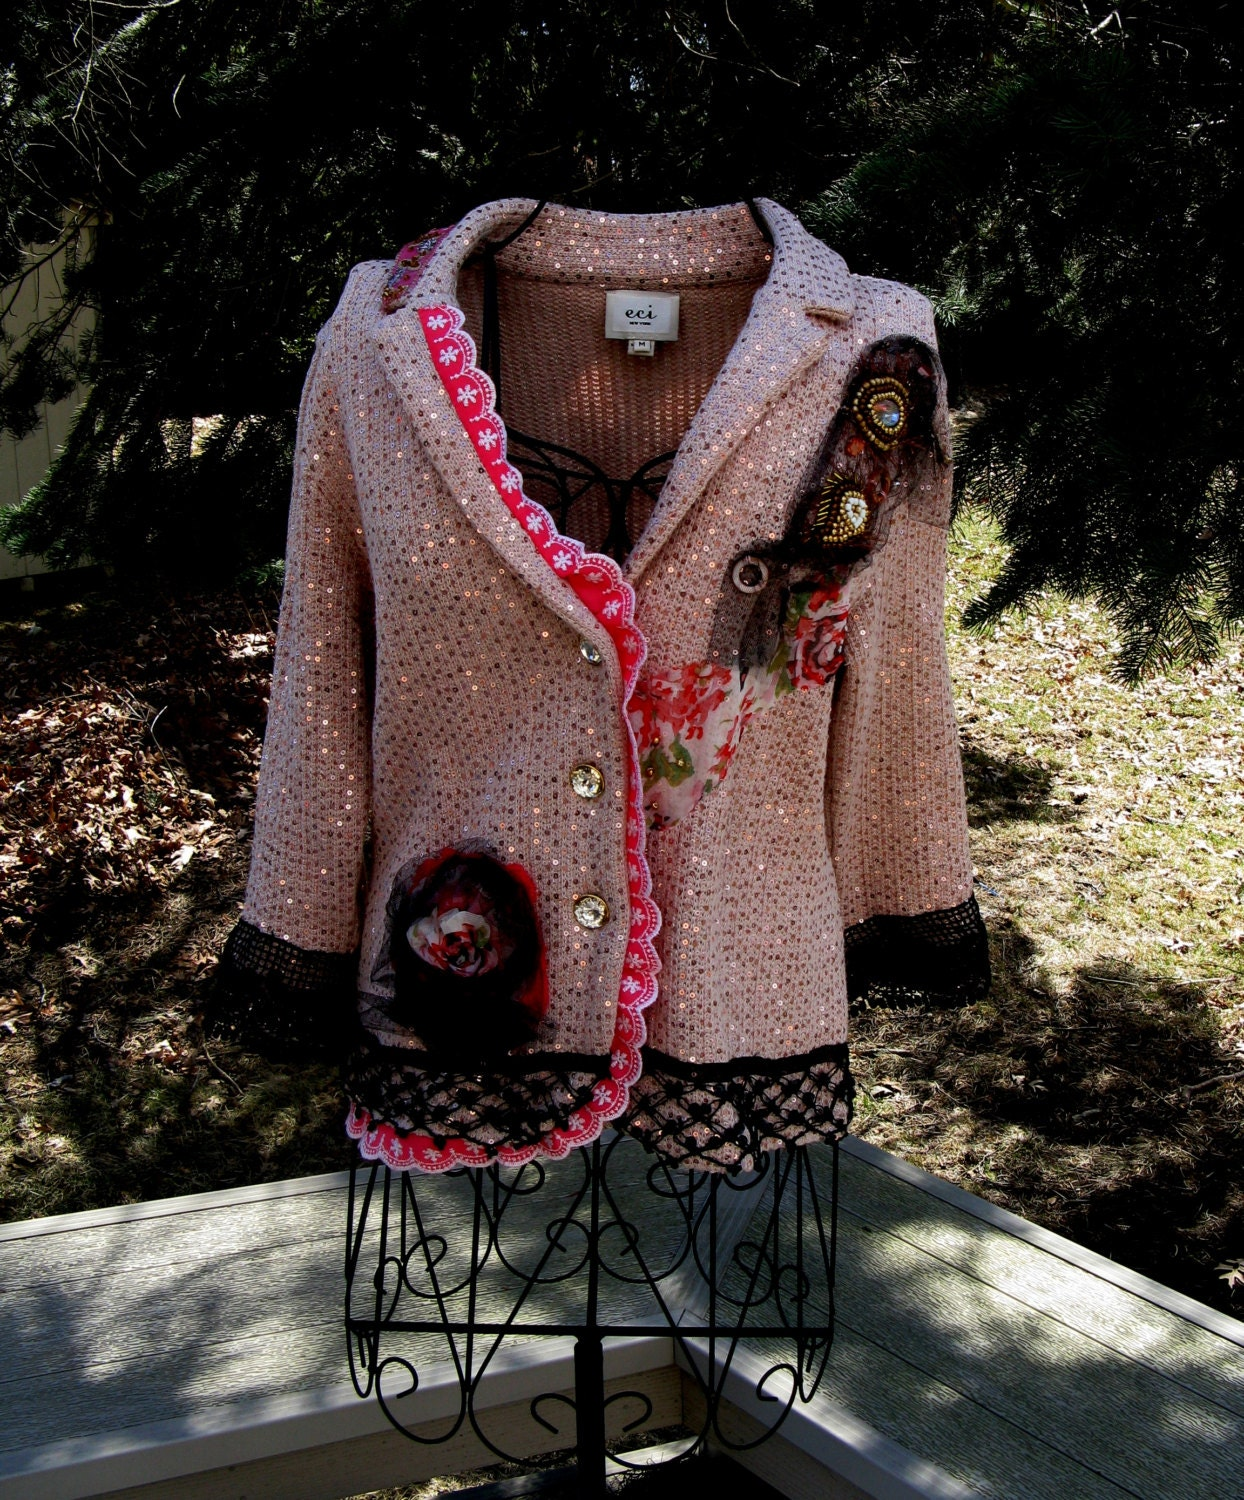 f3b95f2feeeb Art to Wear Sequined Sweater Jacket Gypsy Fairy Boho Romantic ...